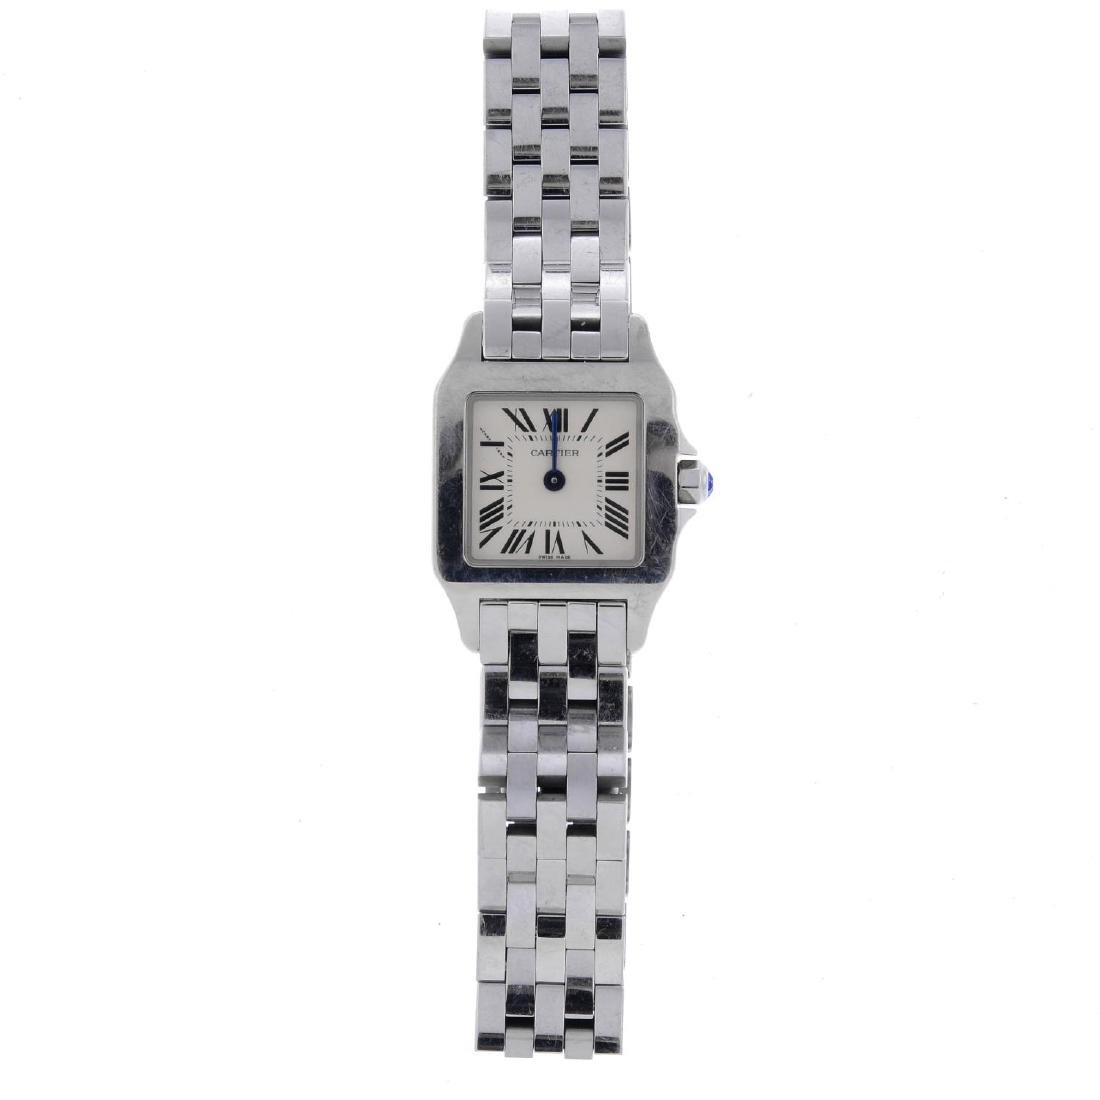 CARTIER - a Santos Demoiselle bracelet watch. Stainless